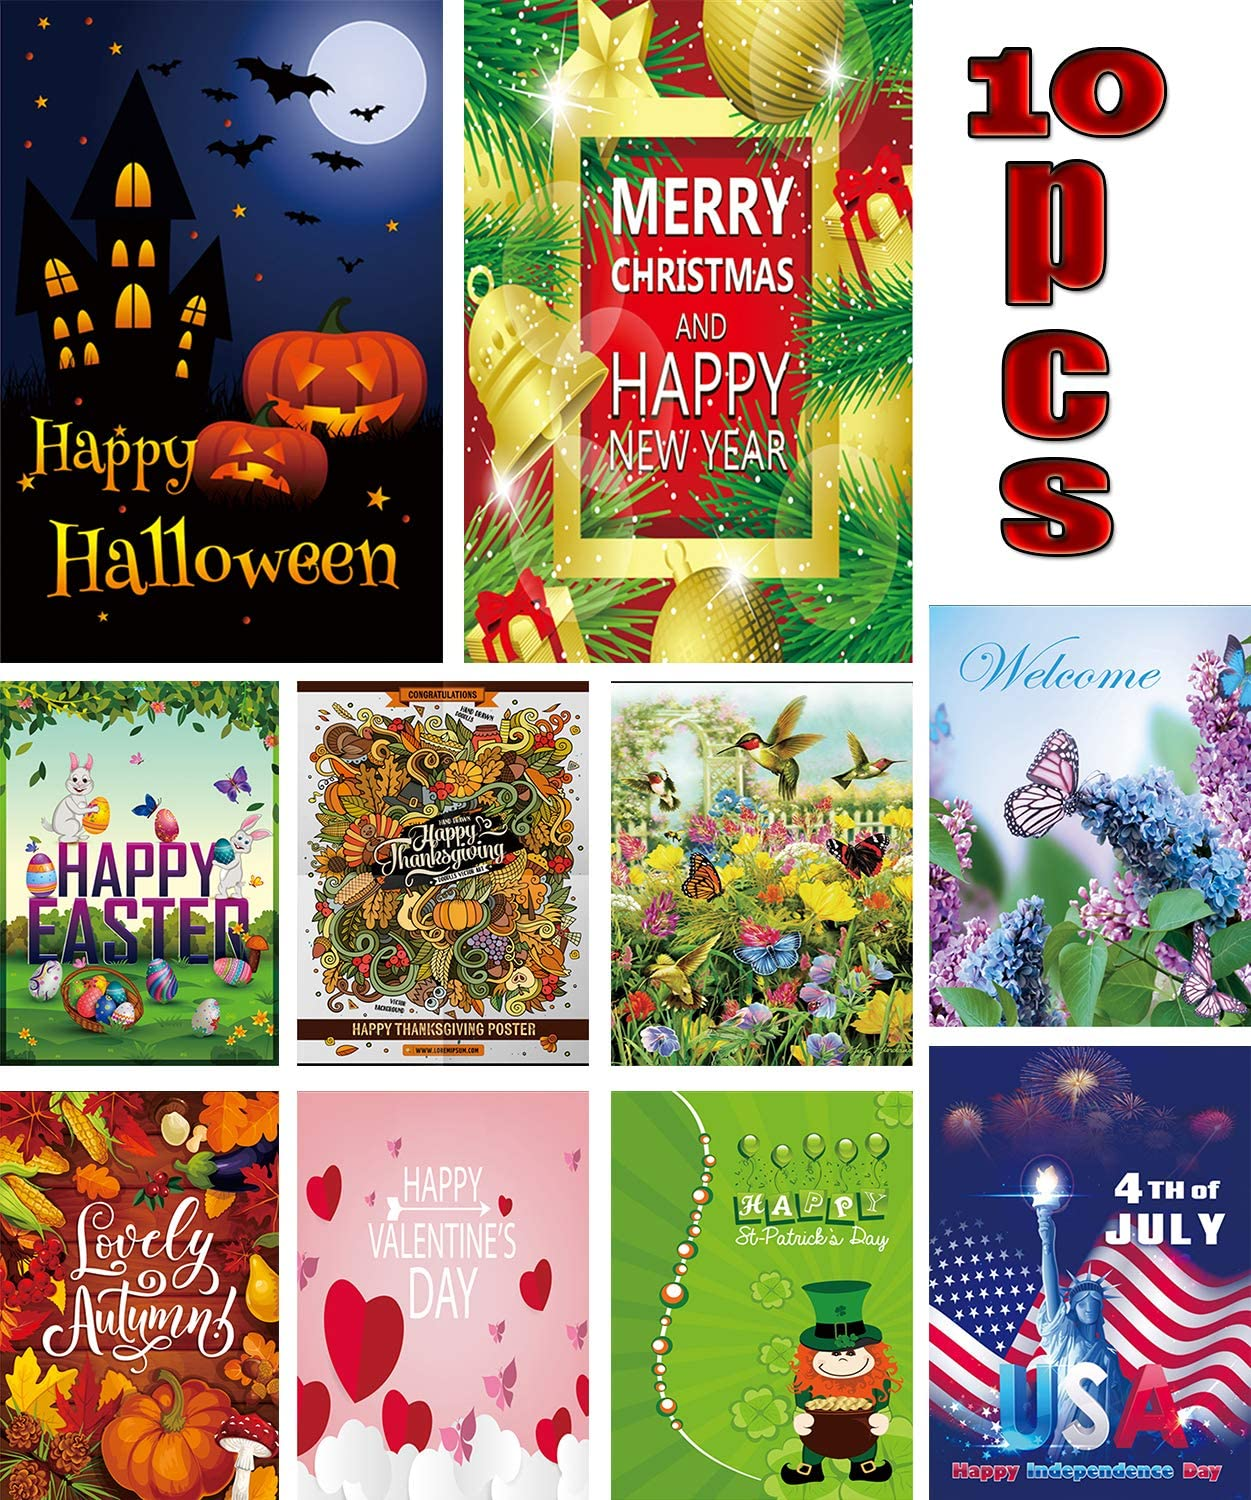 Season Garden Flags - Set of 10 Garden Flags -Double Sided Outdoor 12x18 Inch Small Holiday Yard Flags - Double Sided Colorful Design for All Seasons and Holidays - Premium Quality Durable Material